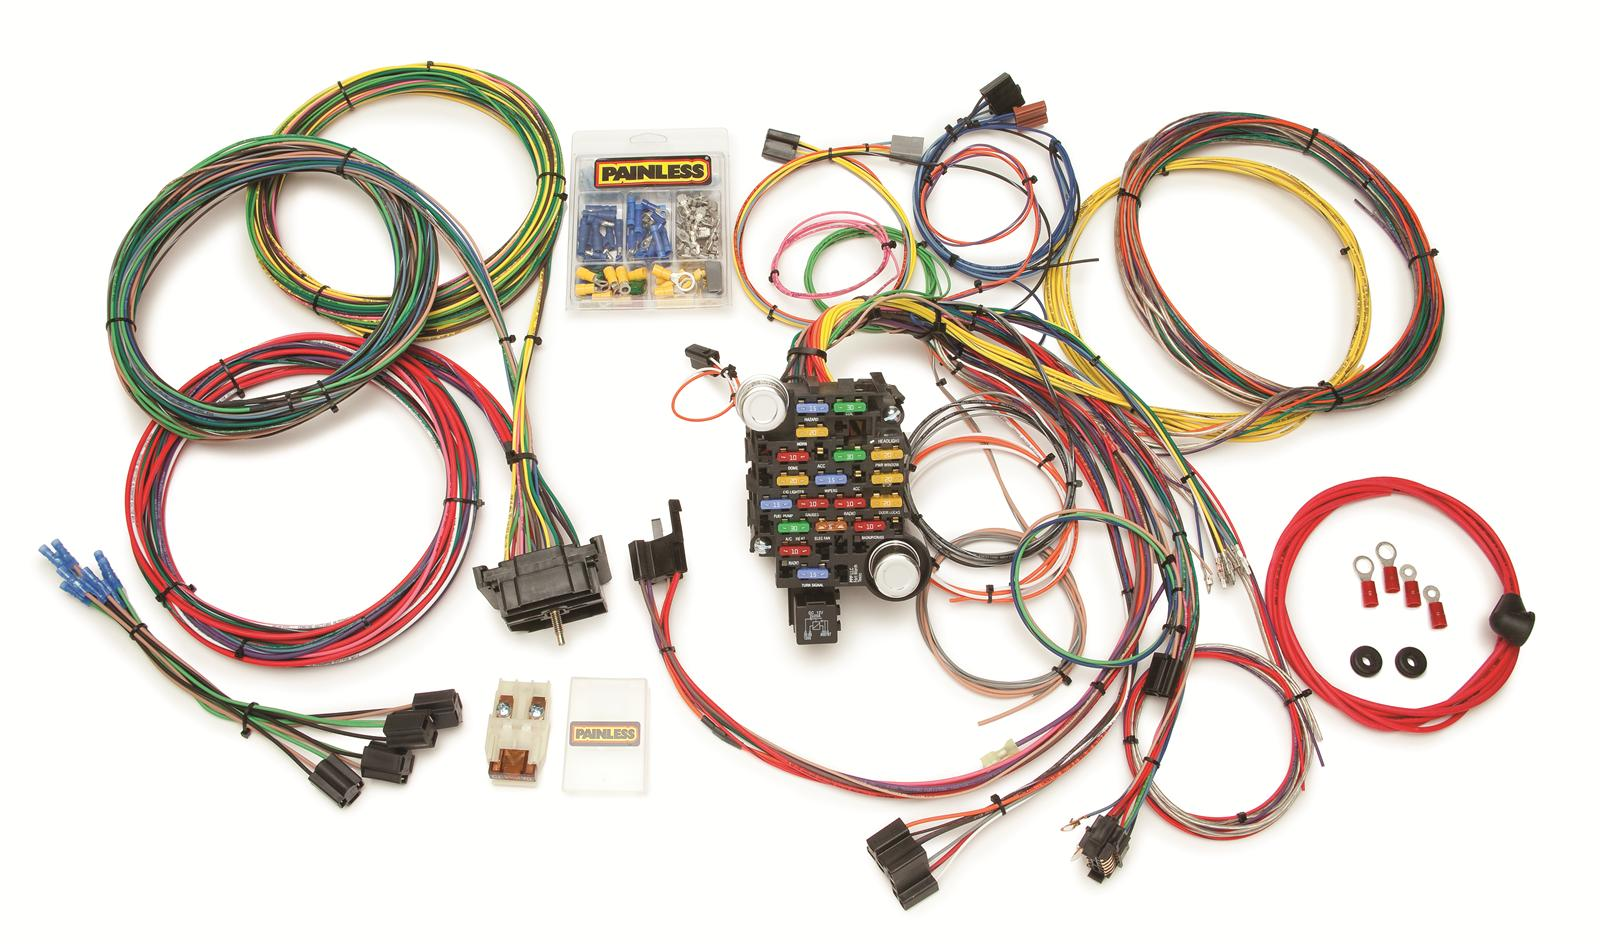 prf 10206_xl painless performance gmc chevy truck harnesses 10206 free painless wiring harness rebate at sewacar.co